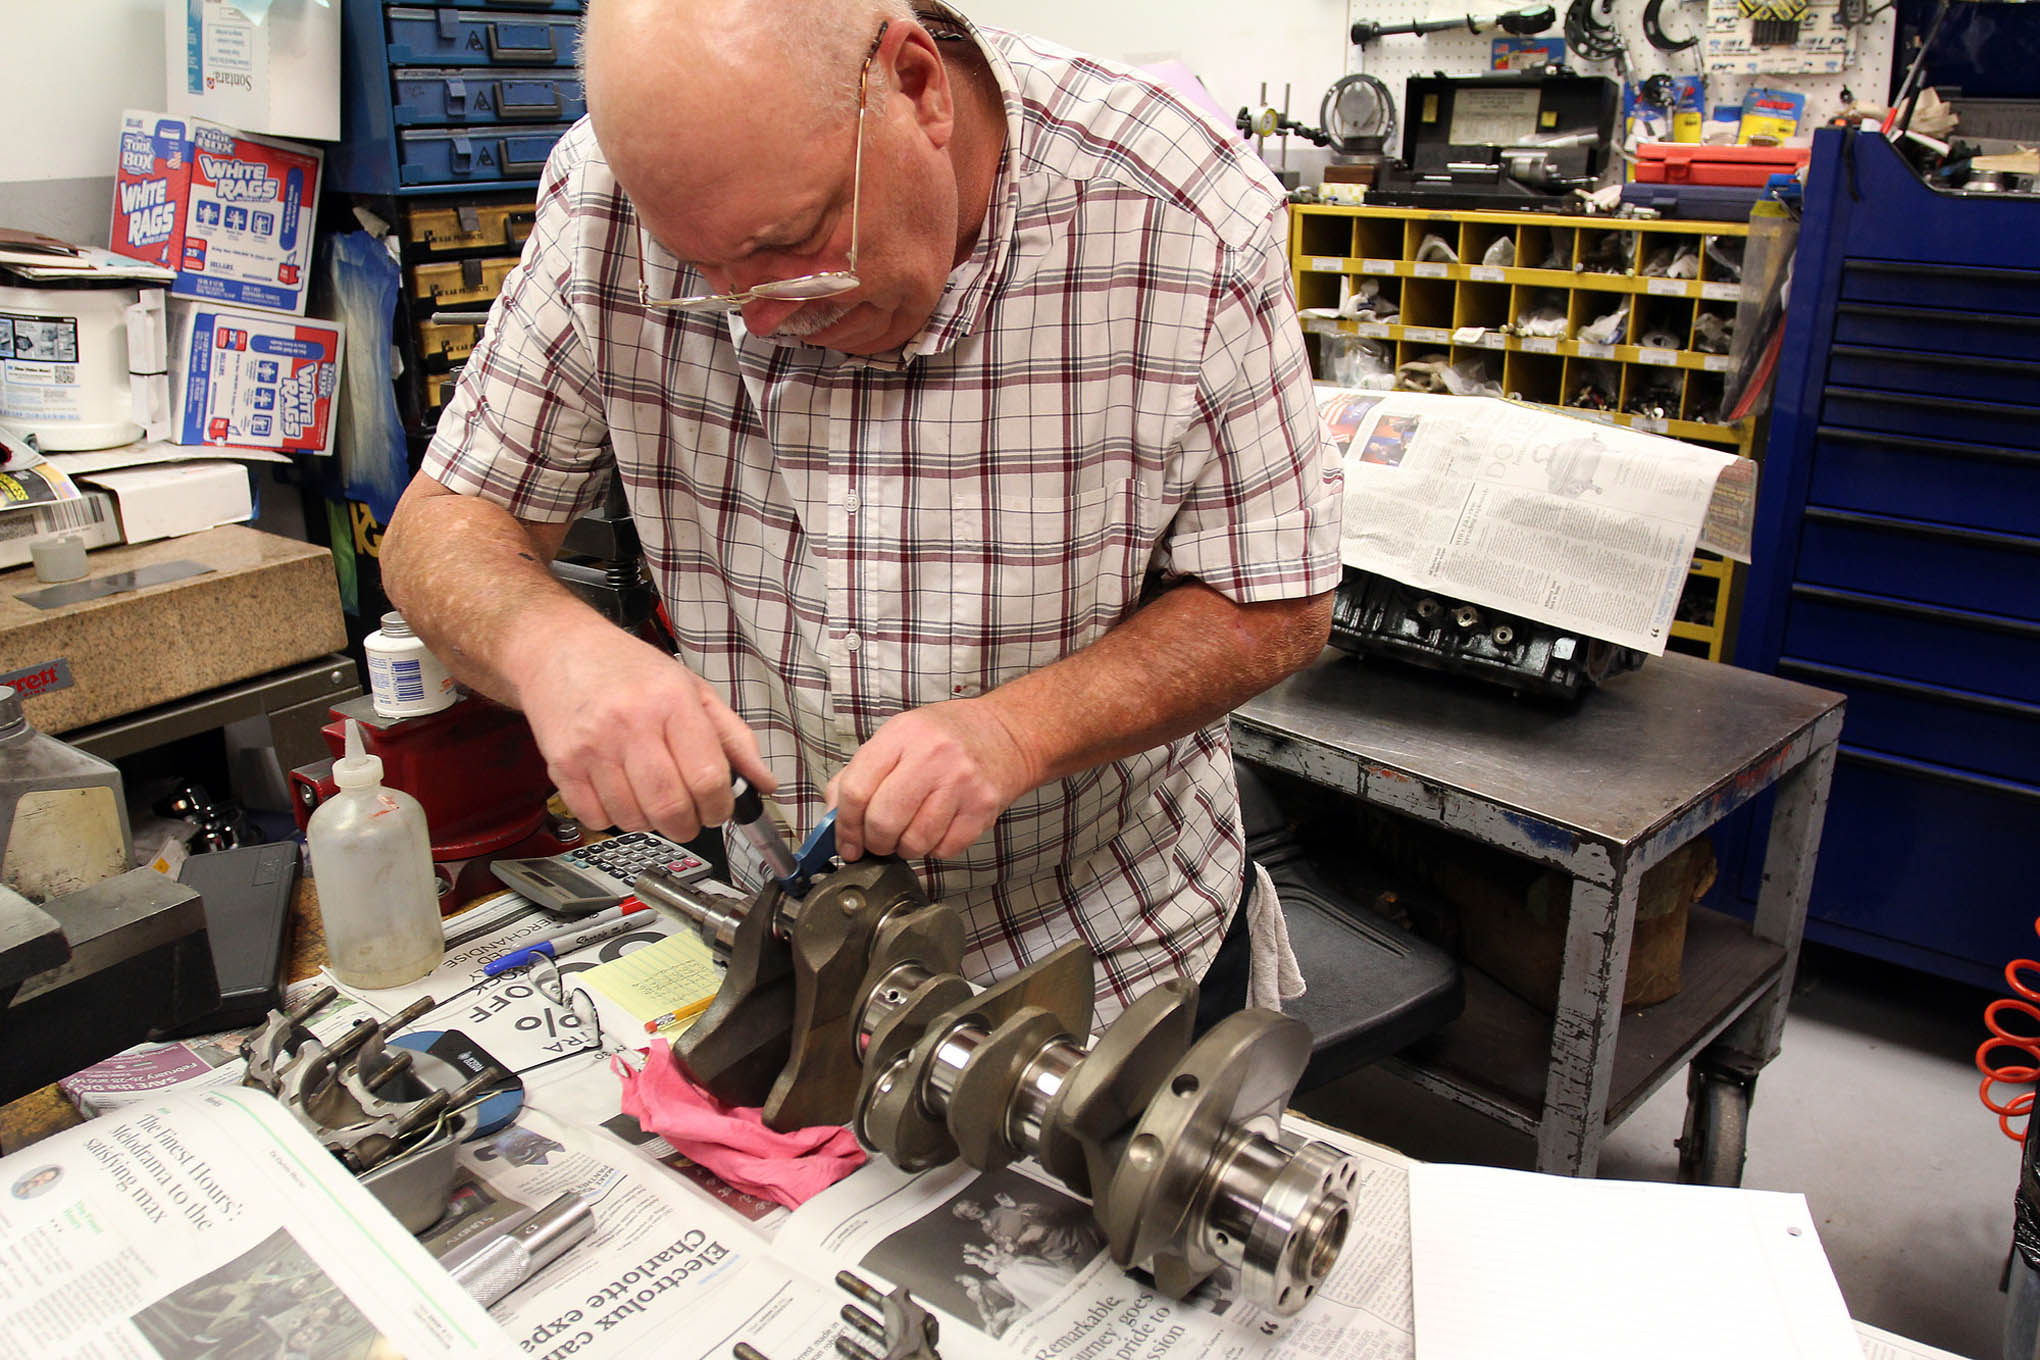 Thankfully, KT Engines' engine assembler Mike Blackwell says the stock crank checked out to spec, so it can be used for another go-round of racing. The rod journals spec in at 1.967 inches while the mains measure up at 2.479 inches.